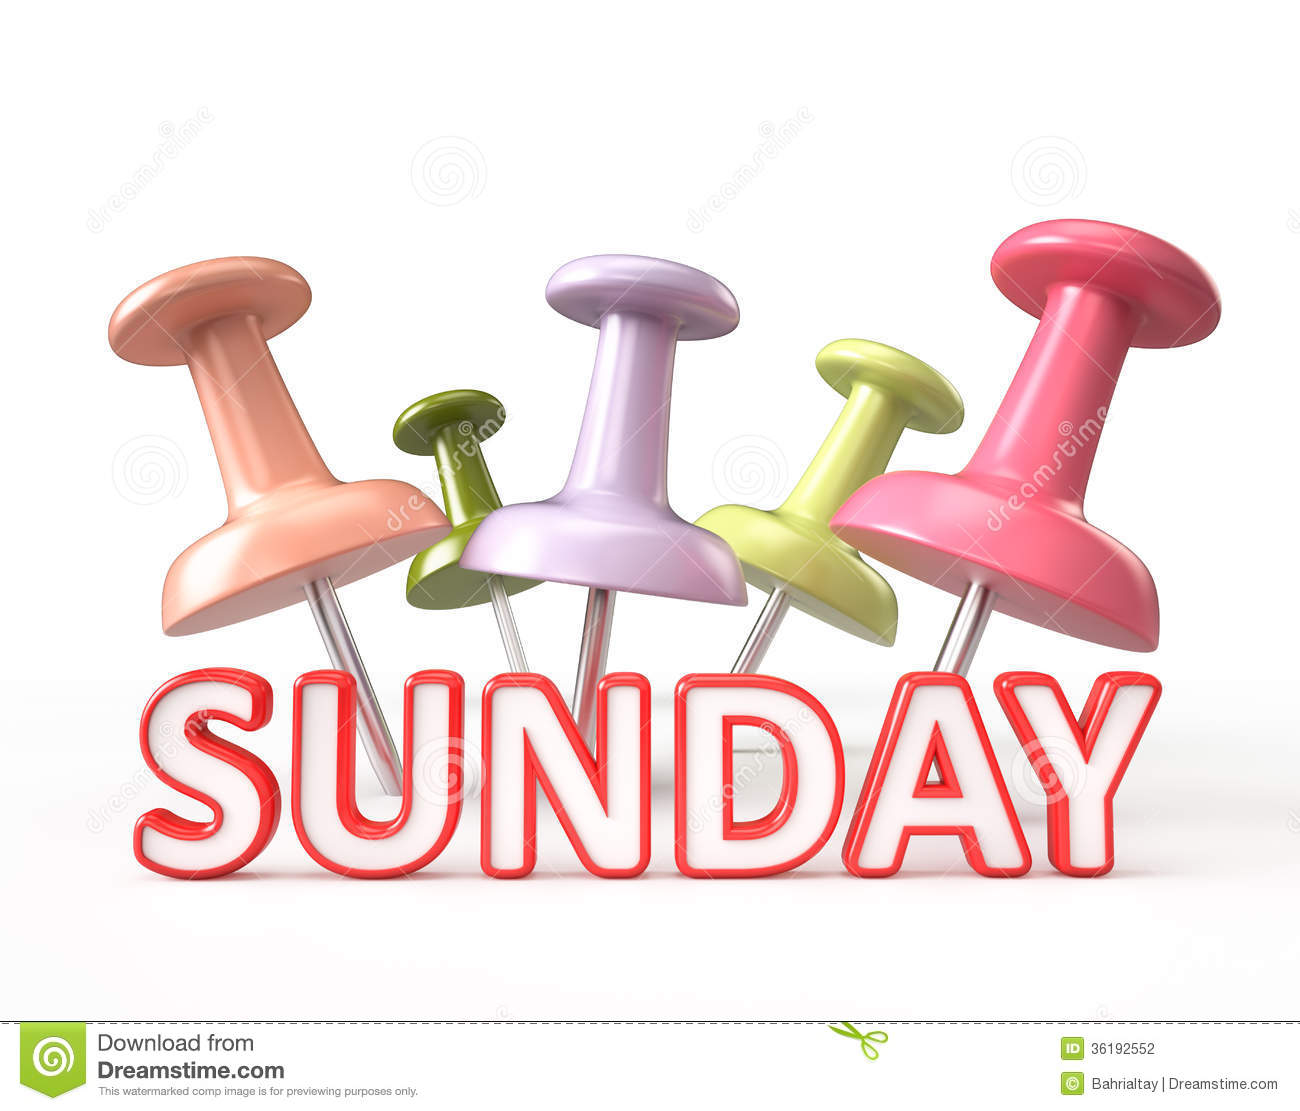 Sunday Brunch Clipart Busy sunday stock photography